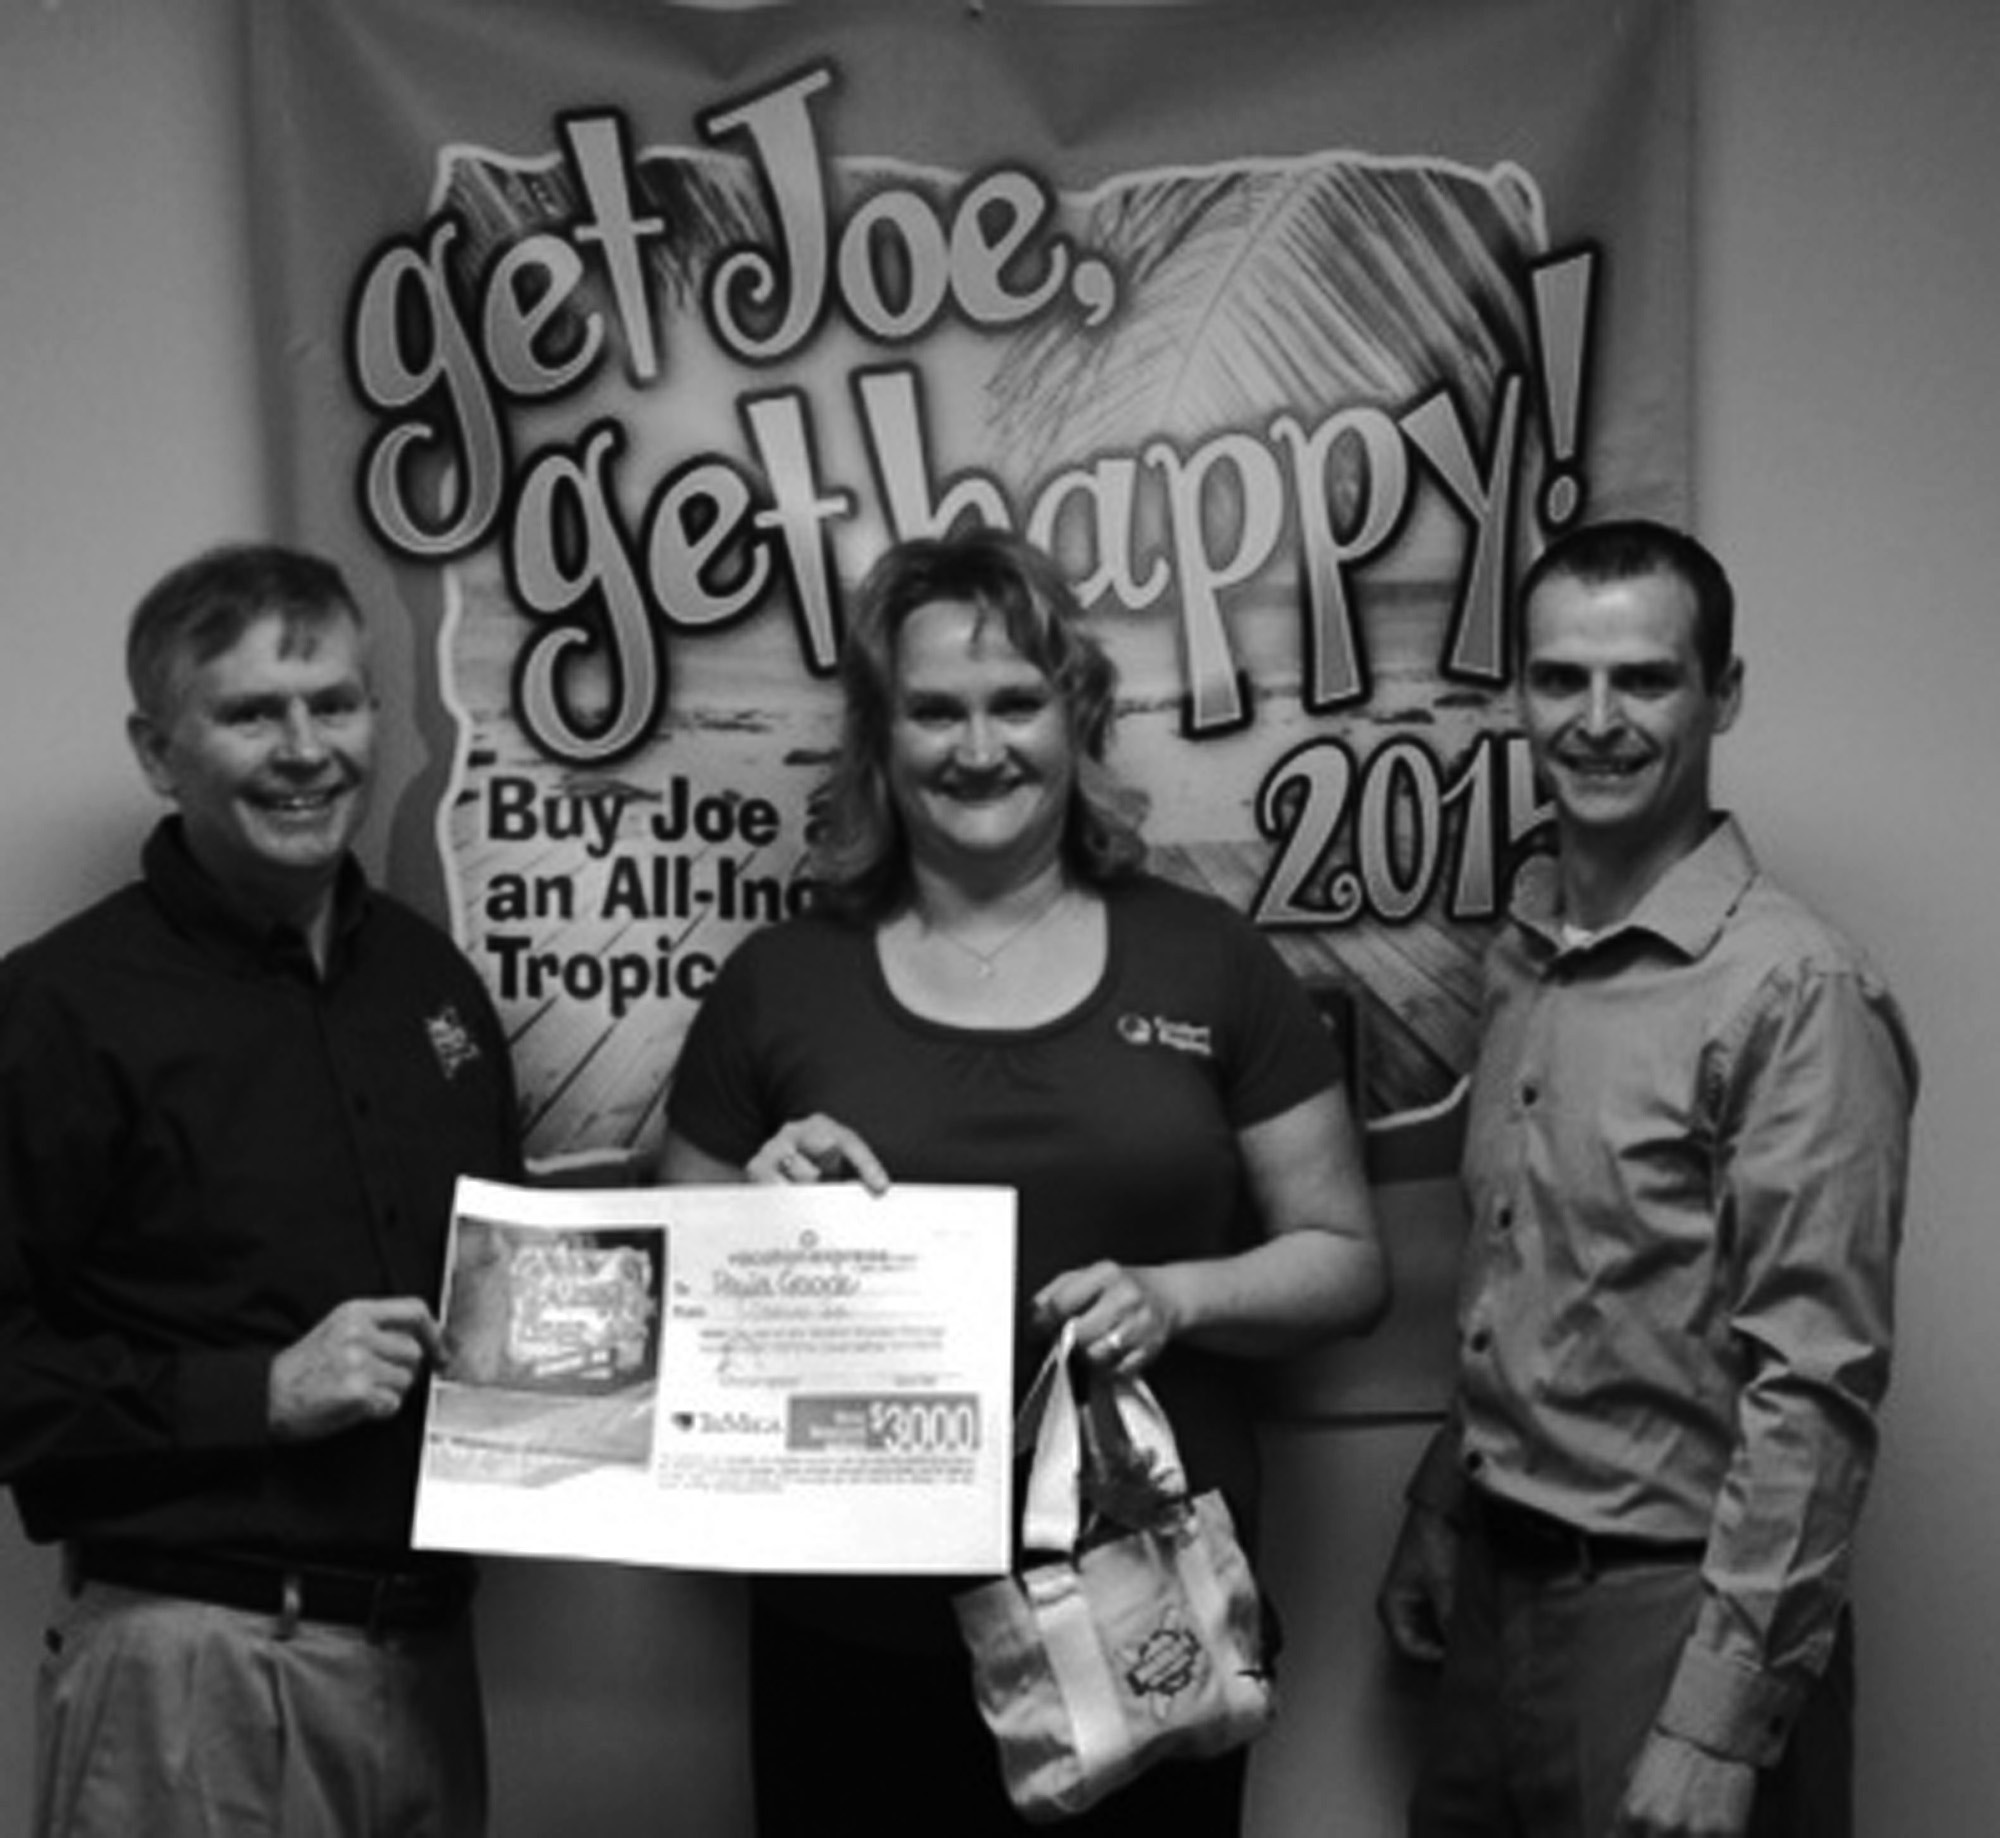 Warren Roberts owner of Warren's Office Supplies in Sanford and Skowhegan is shown here with Paula Goode and Tyler Hartt, a representative of Genuine Joe breakroom and paper products. Goode was the winner of a tropical vacation recently sponsored by the two entities.